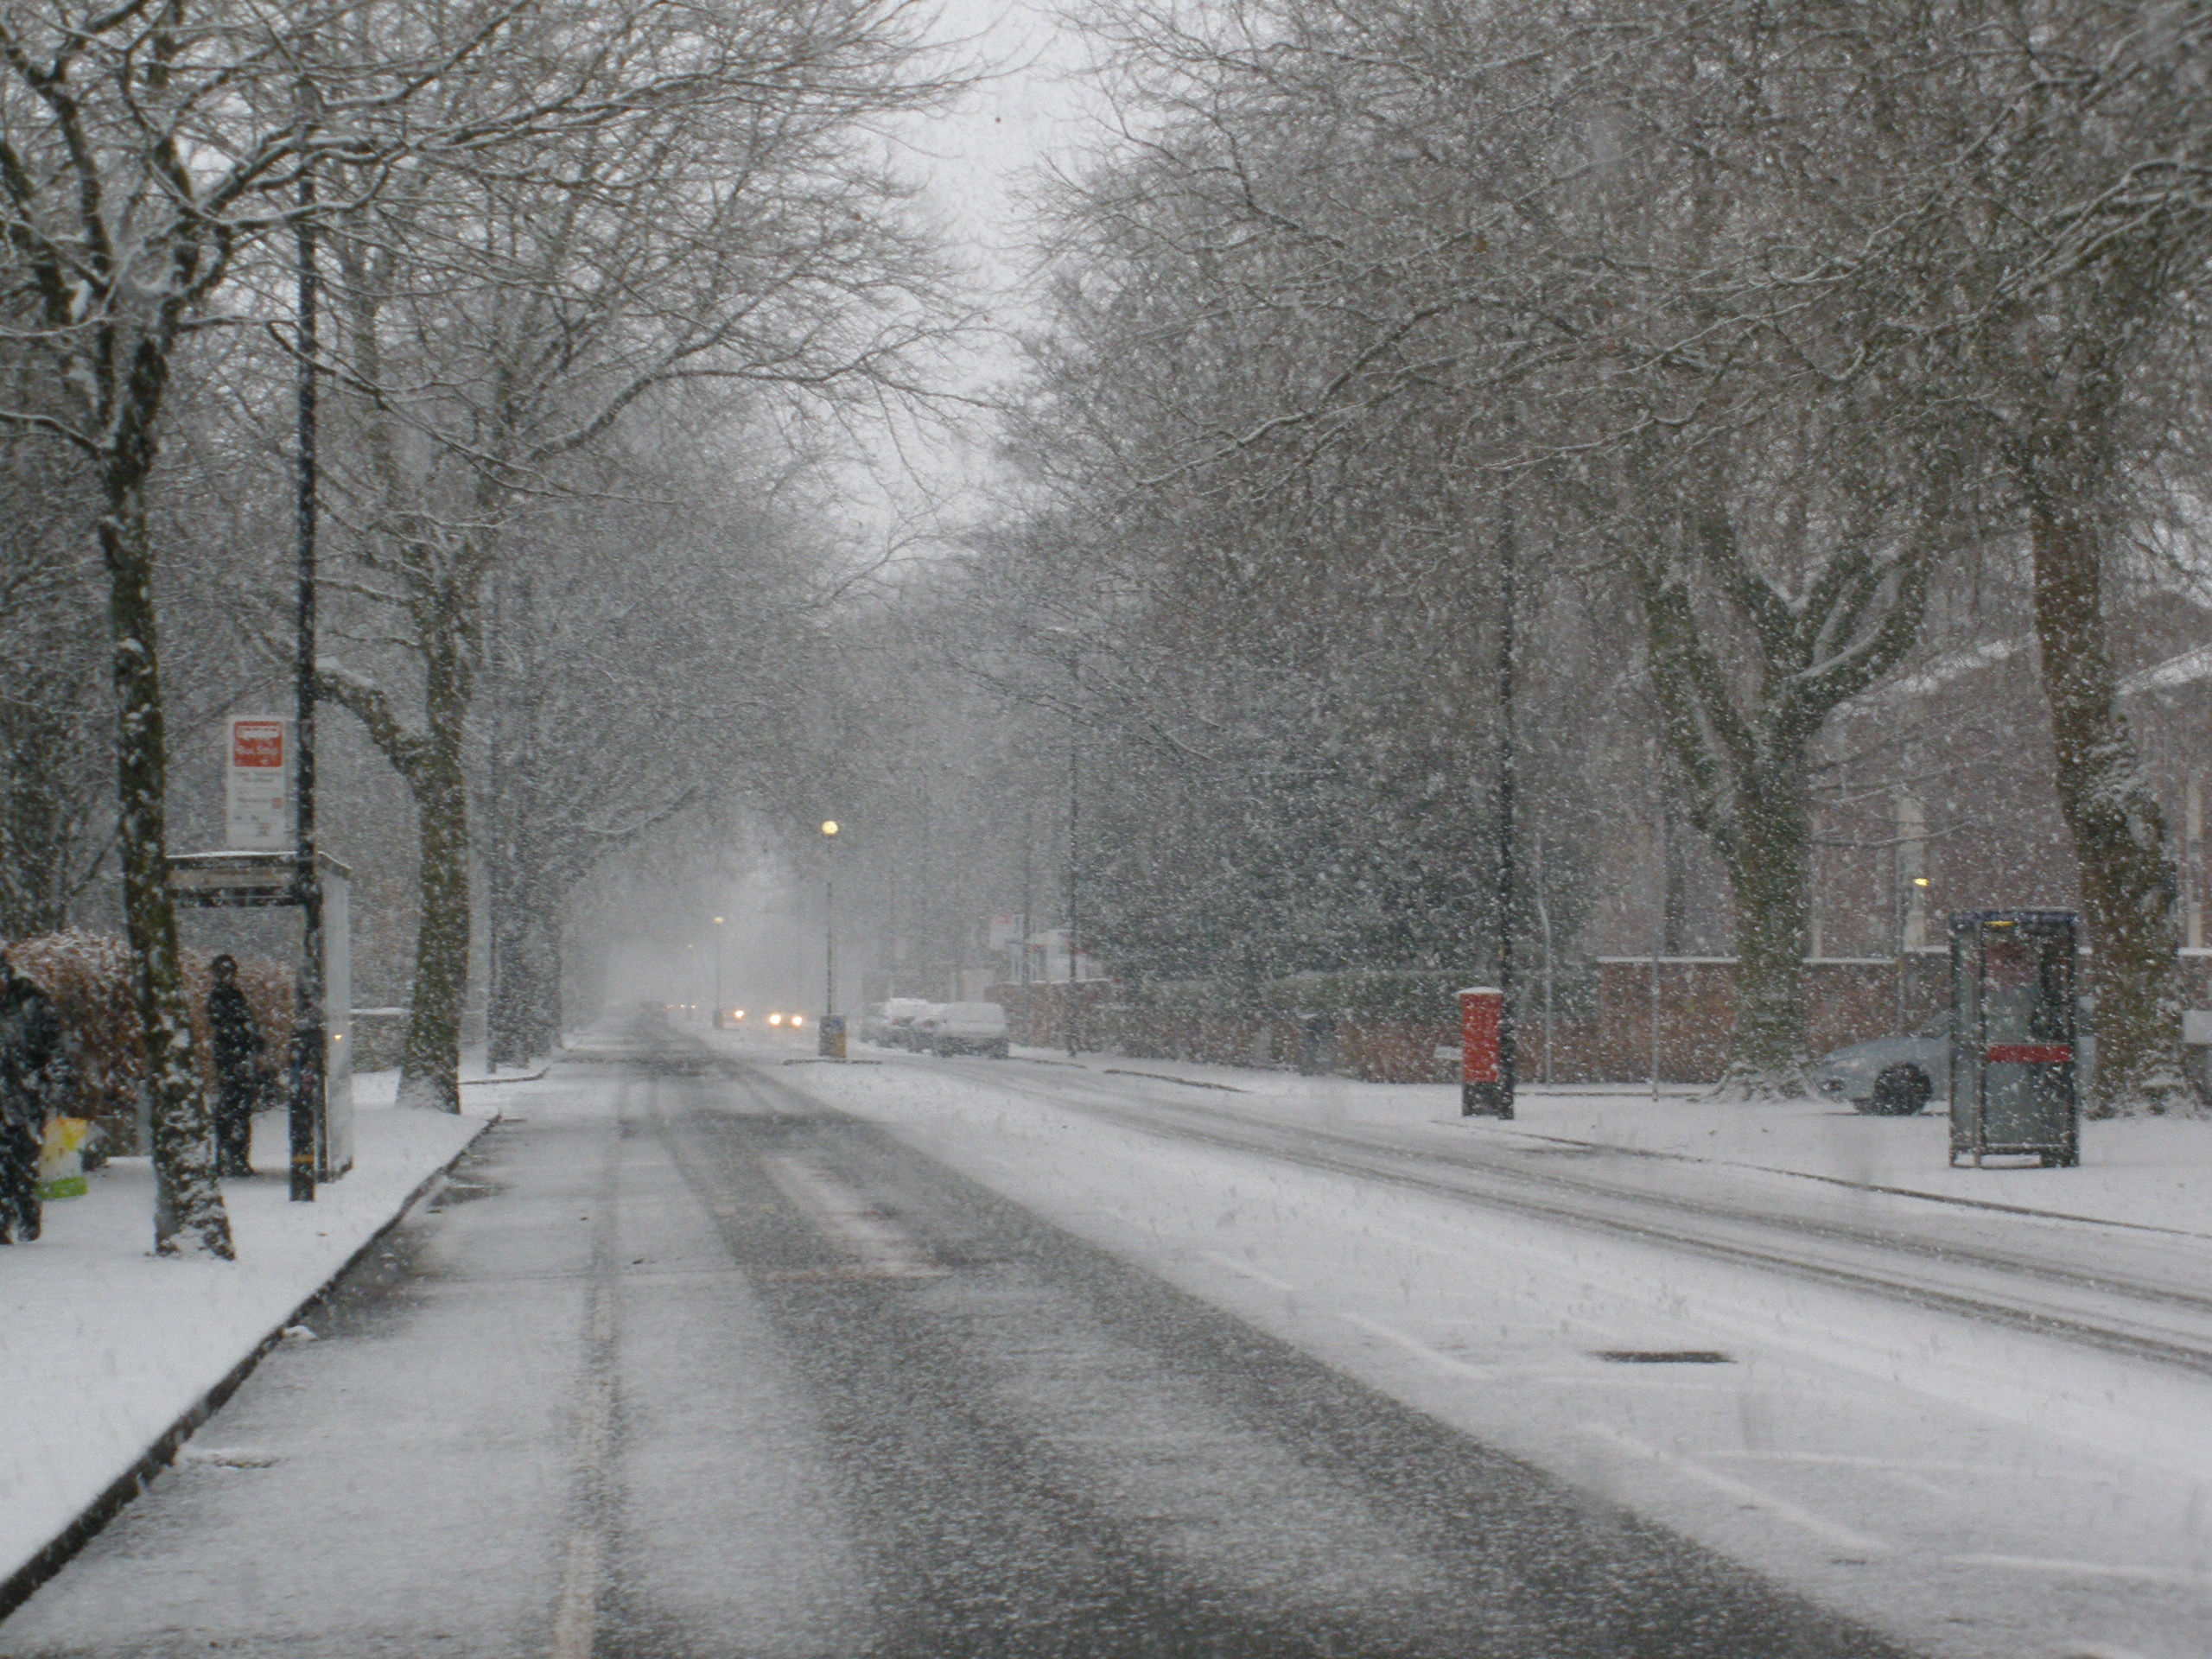 Upper_Chorlton_Road_in_the_Snow.jpg